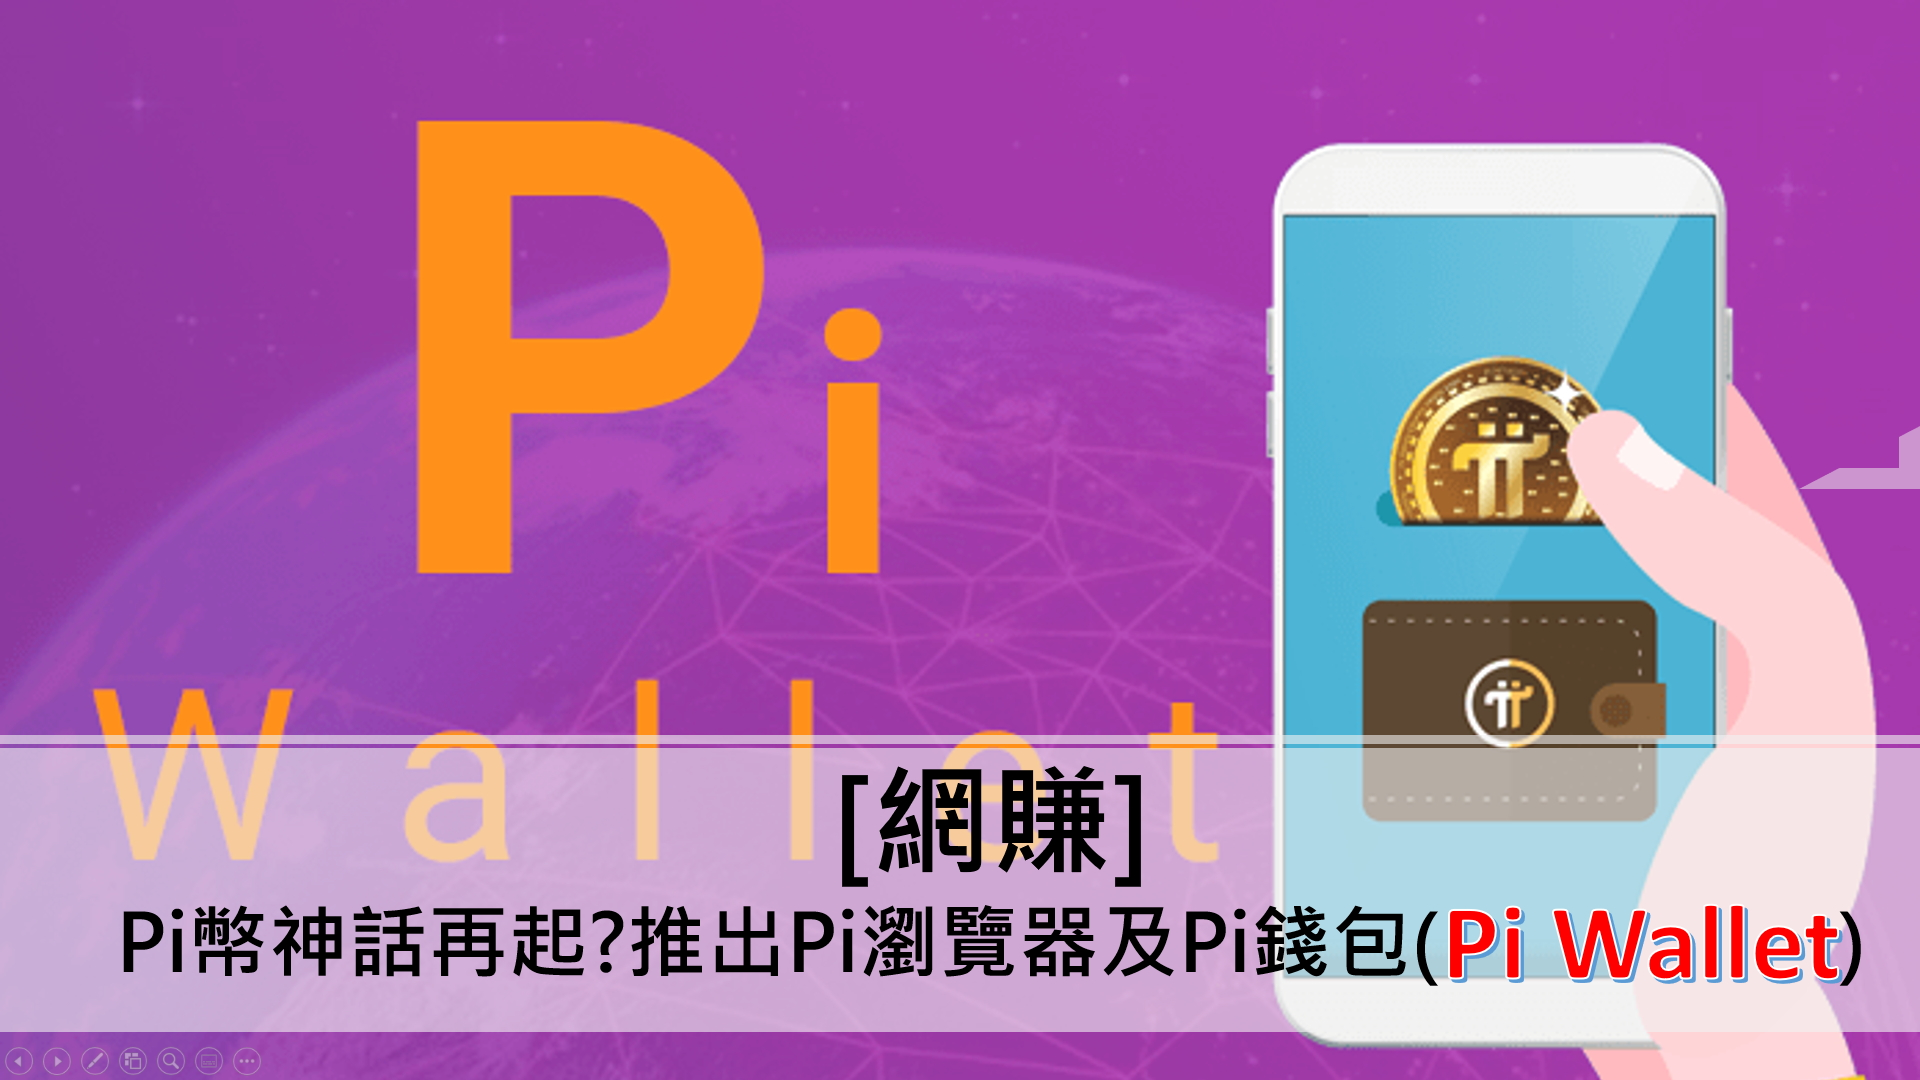 Pi Wallet Introduction